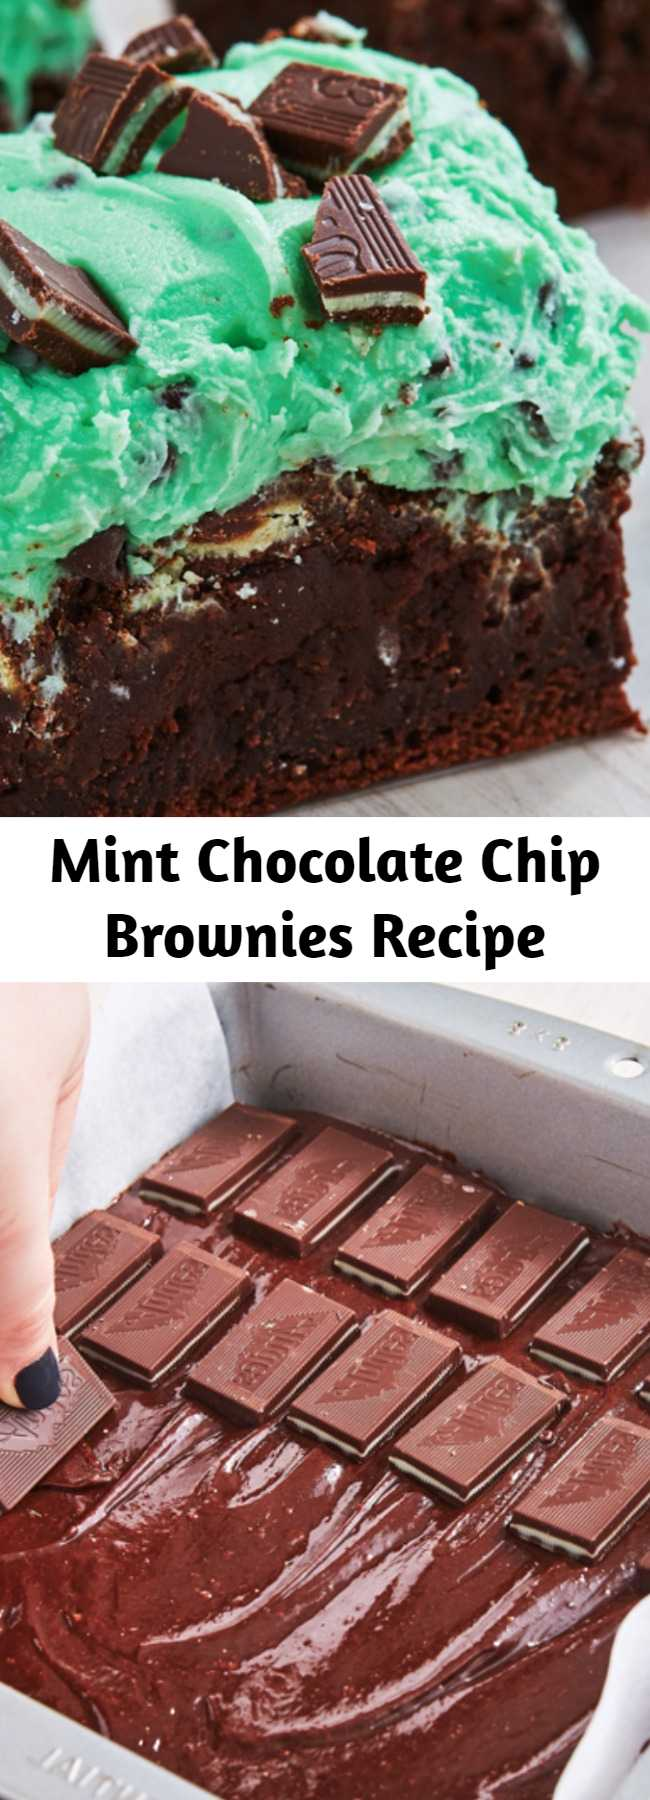 Mint Chocolate Chip Brownies Recipe - These Mint Chocolate Chip Brownies are what mint and chocolate dreams are made of.